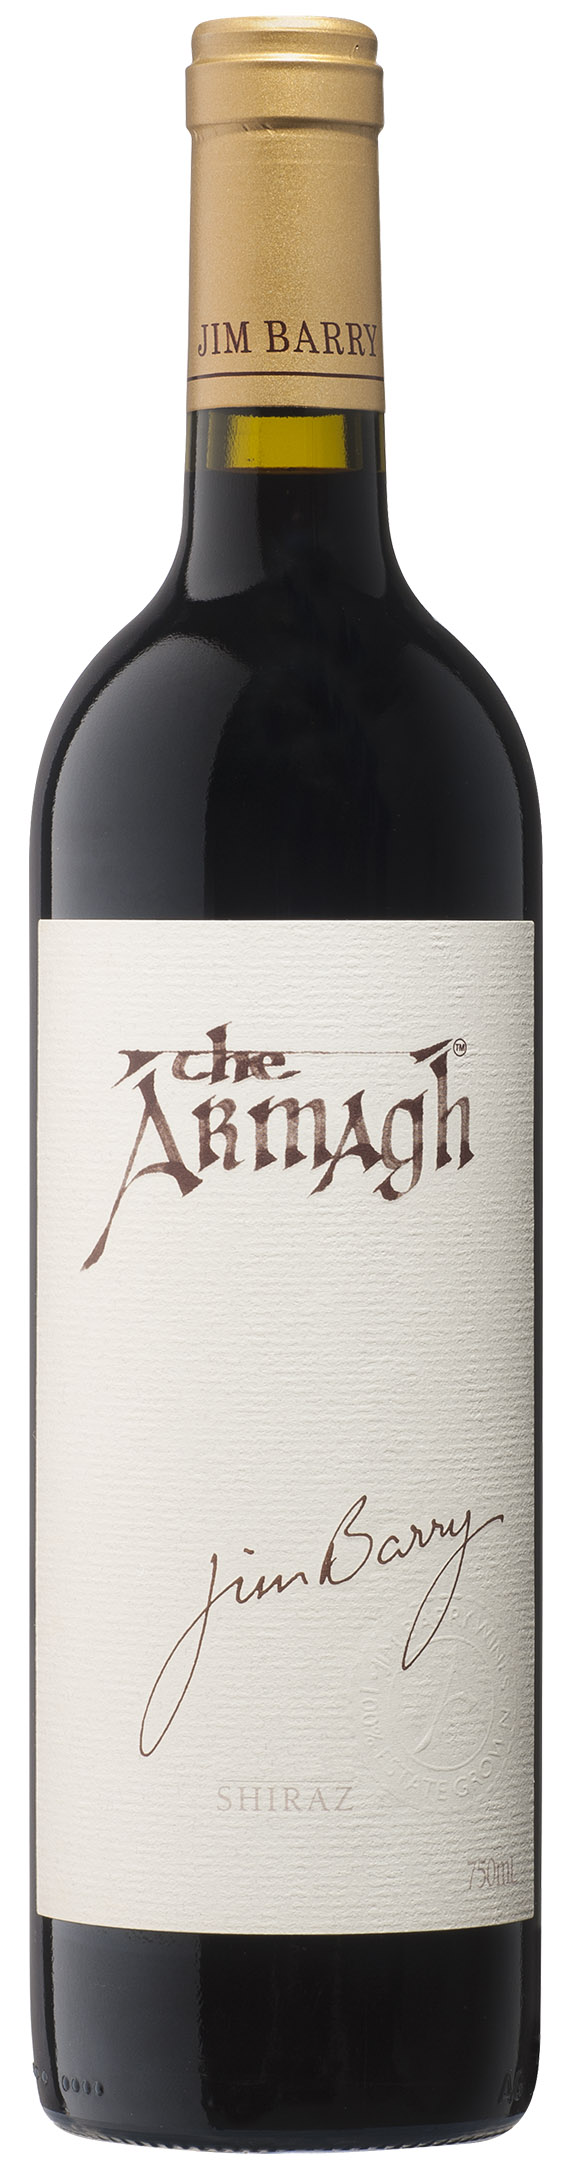 Jim Barry The Armagh Shiraz bottle